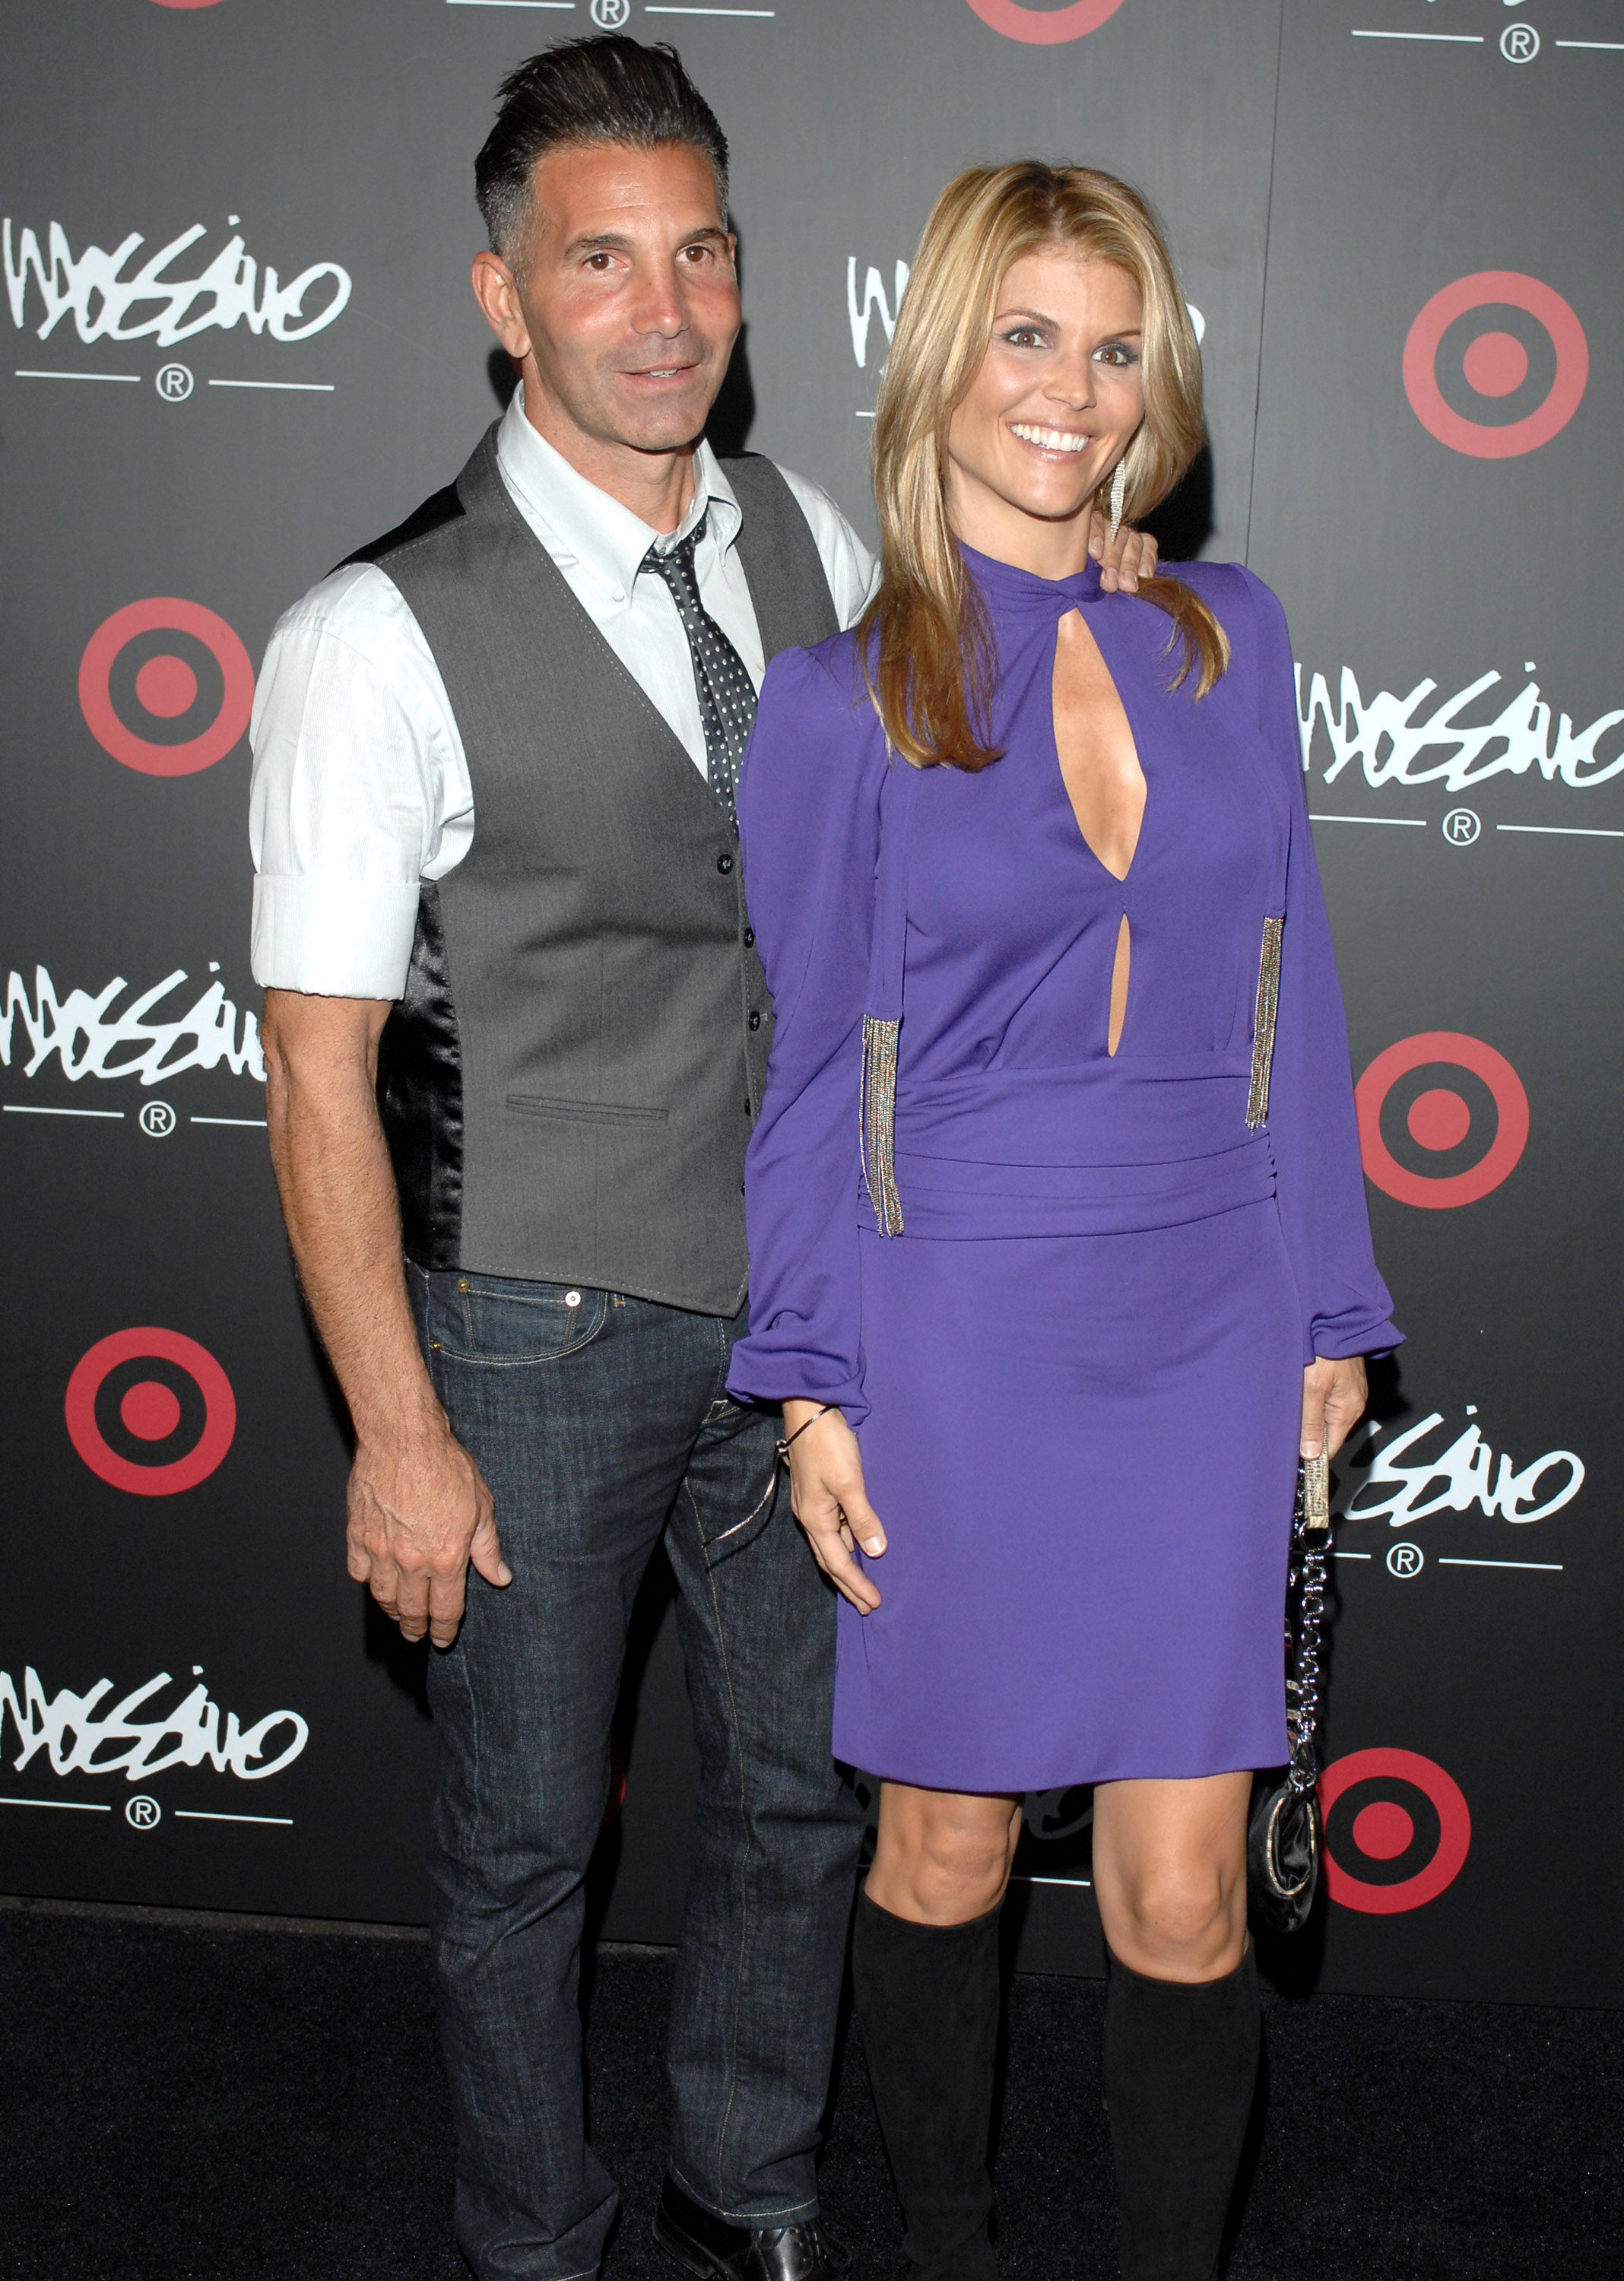 Mossimo Giannulli and Lori Loughlin at Target Hosts LA Fashion Week Party for Designer on October 19, 2006 | Photo: Getty Image